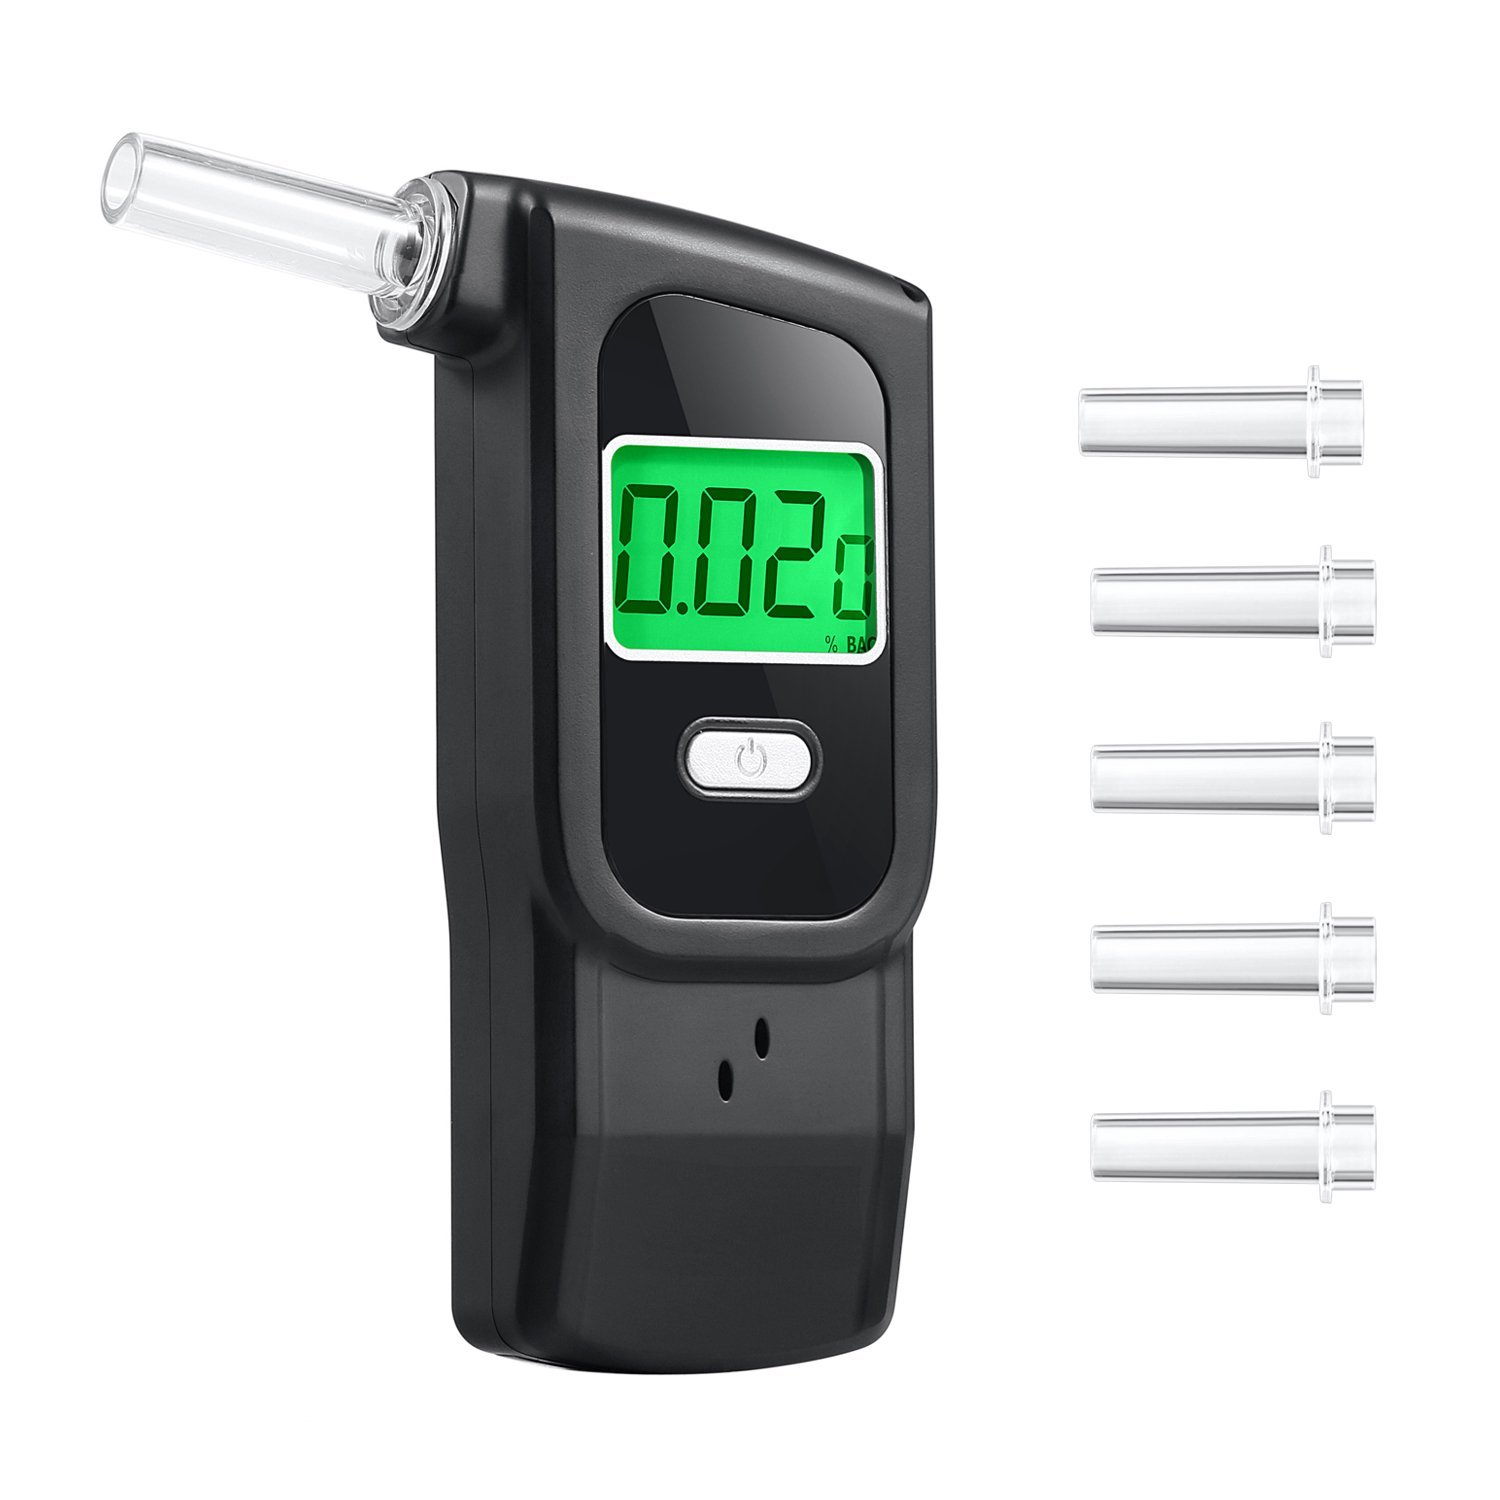 Breathalyzer Anntoo Professional Grade Portable Digital Alcohol Tester with 5 Mouthpieces for Personal Use - Black